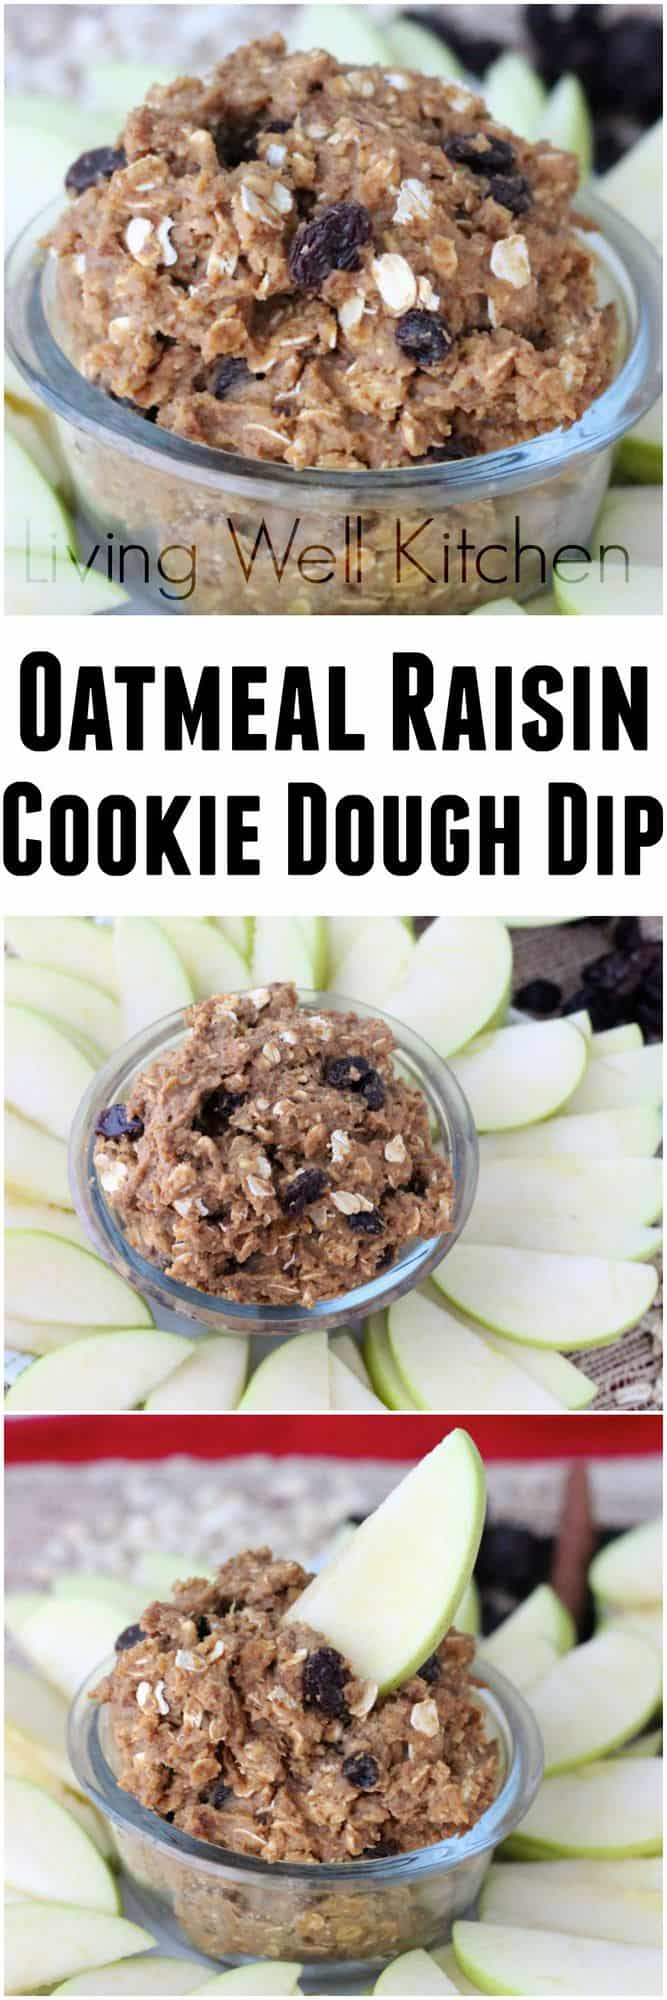 This healthy cookie dough dip is the perfect afternoon snack, using the natural sweetness of California raisins. from Living Well Kitchen @memeinge